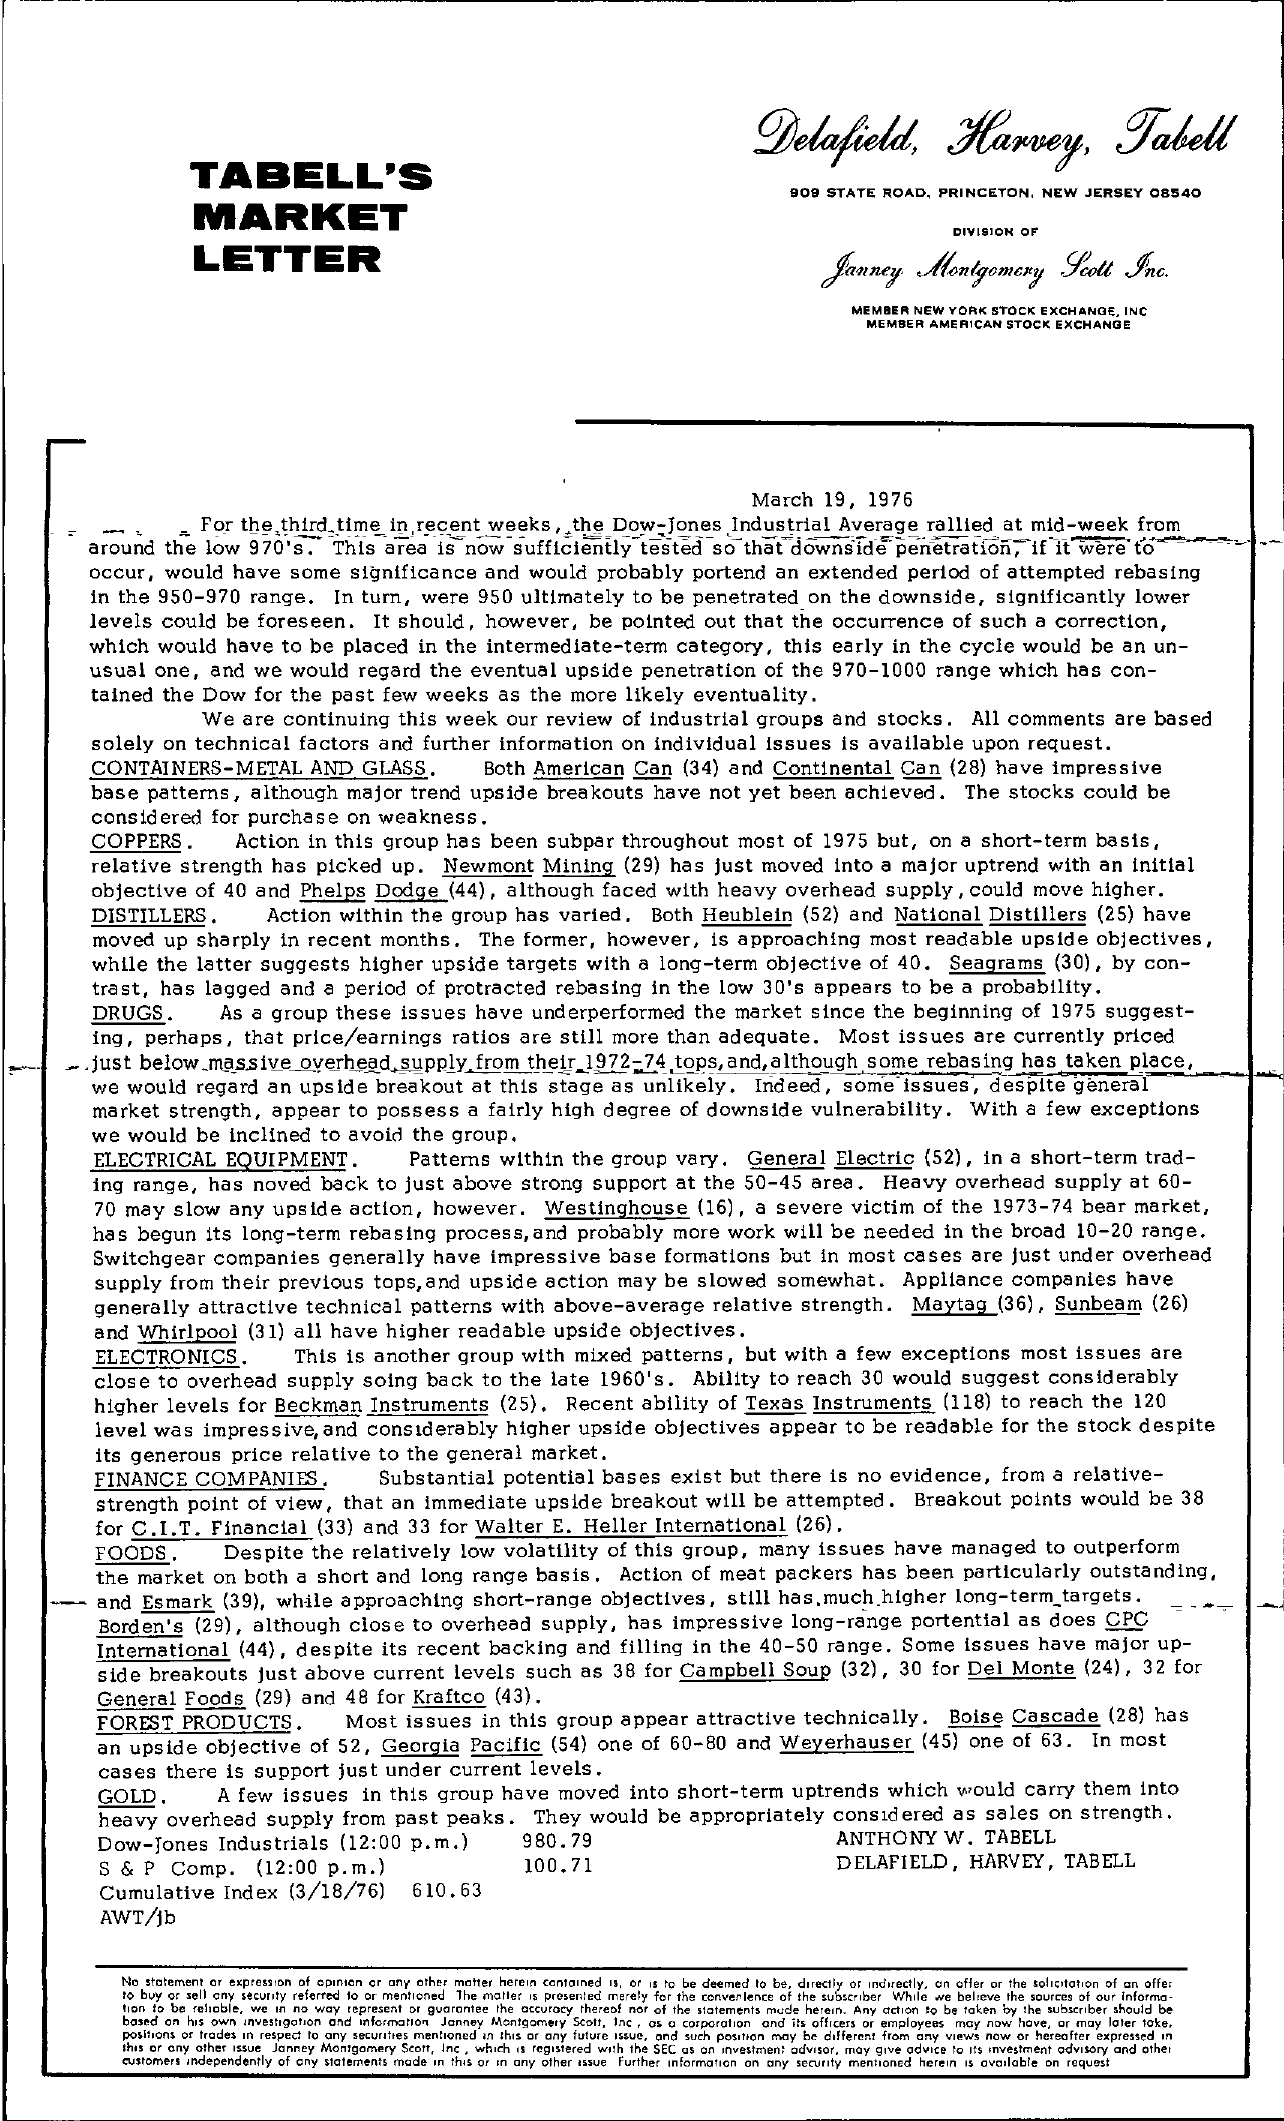 Tabell's Market Letter - March 19, 1976